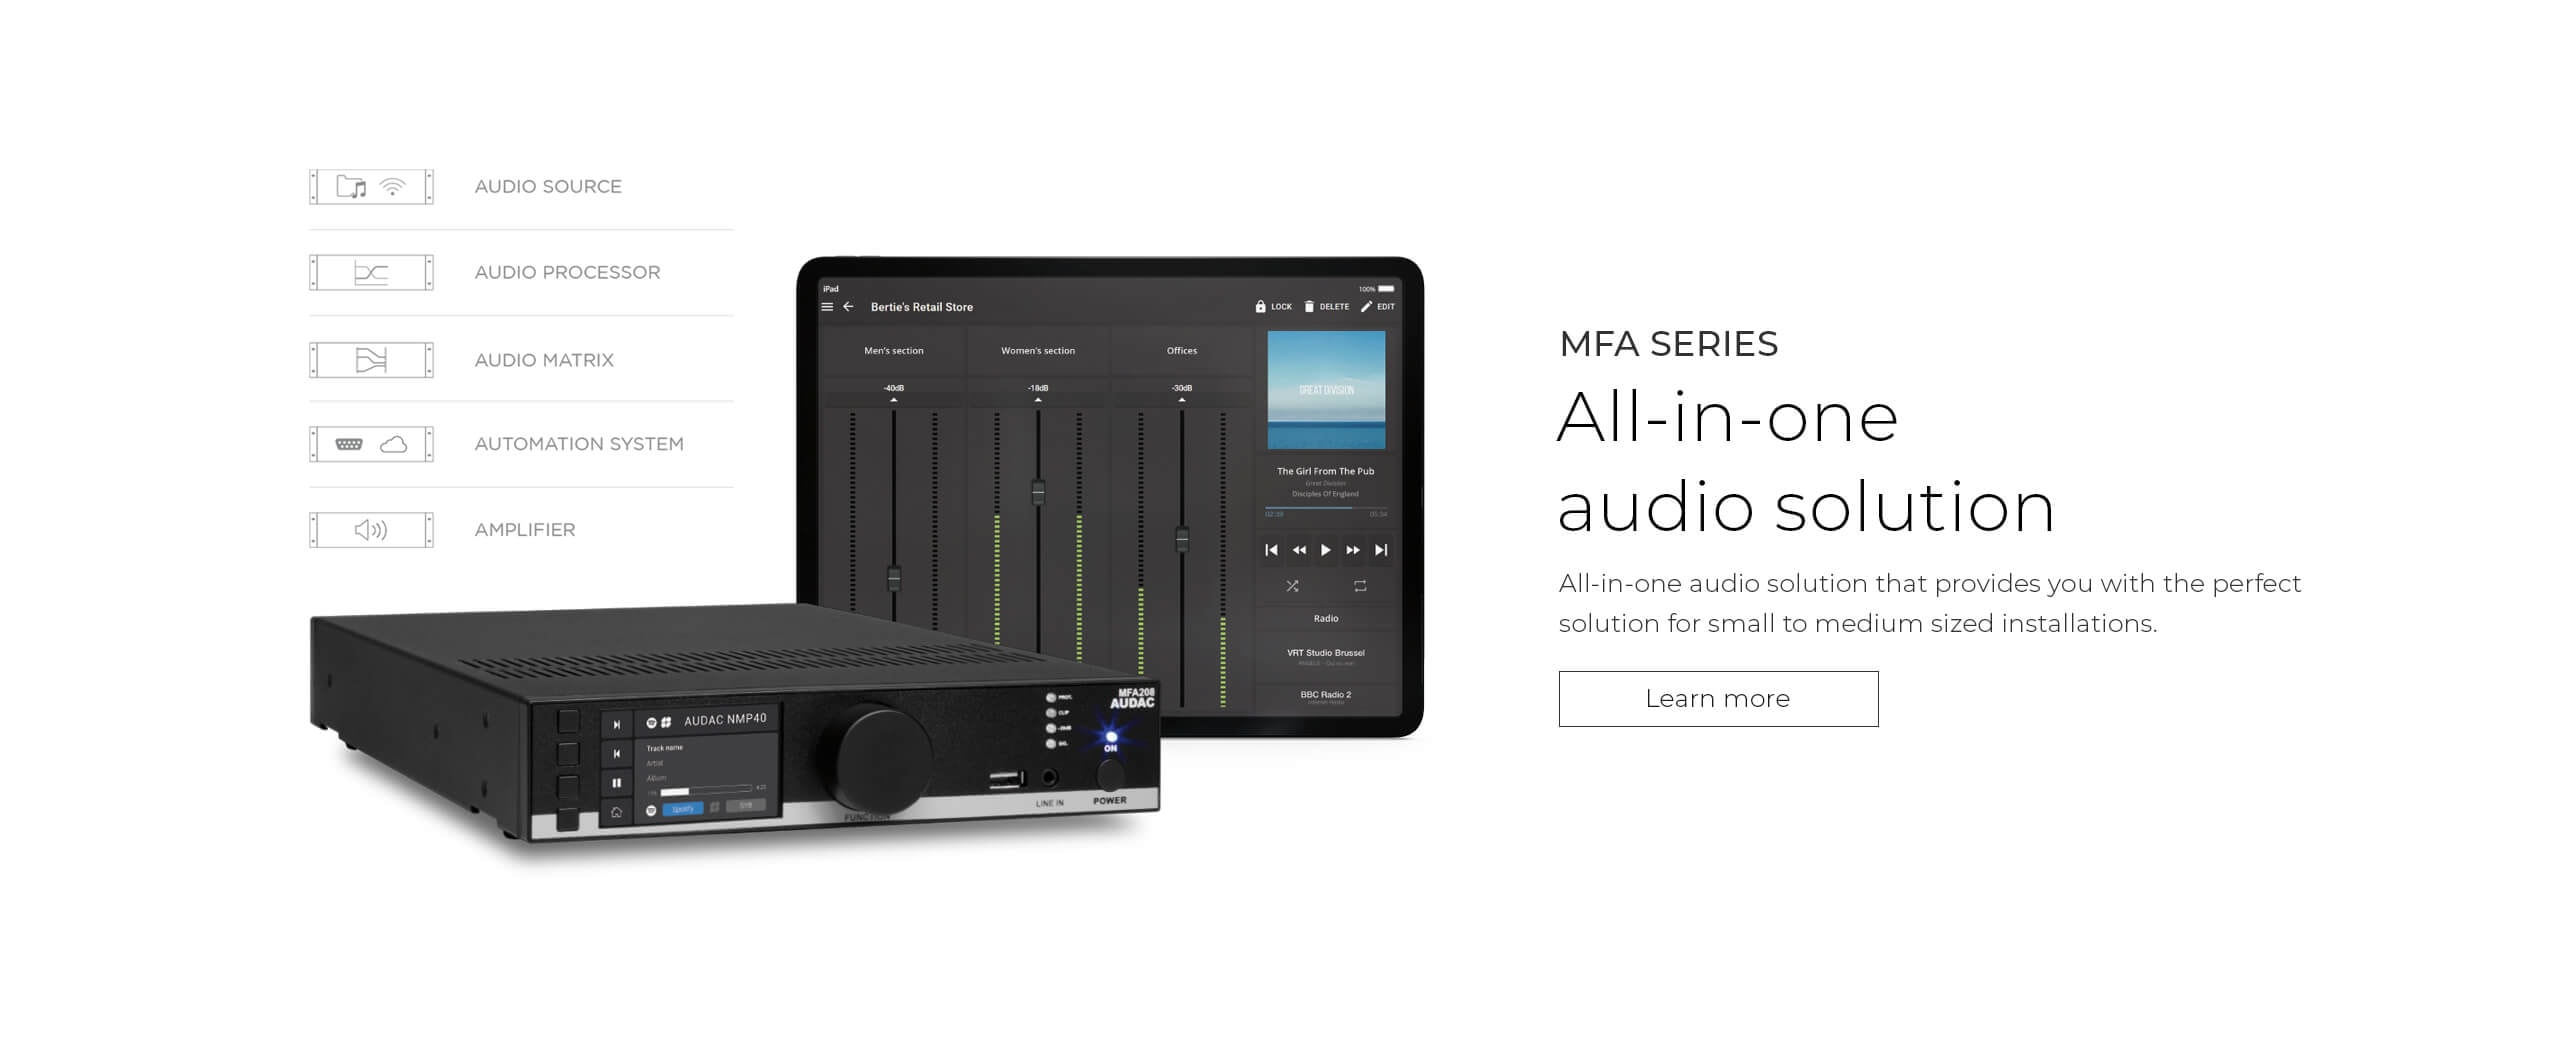 MFA series - All-in-one audio solution